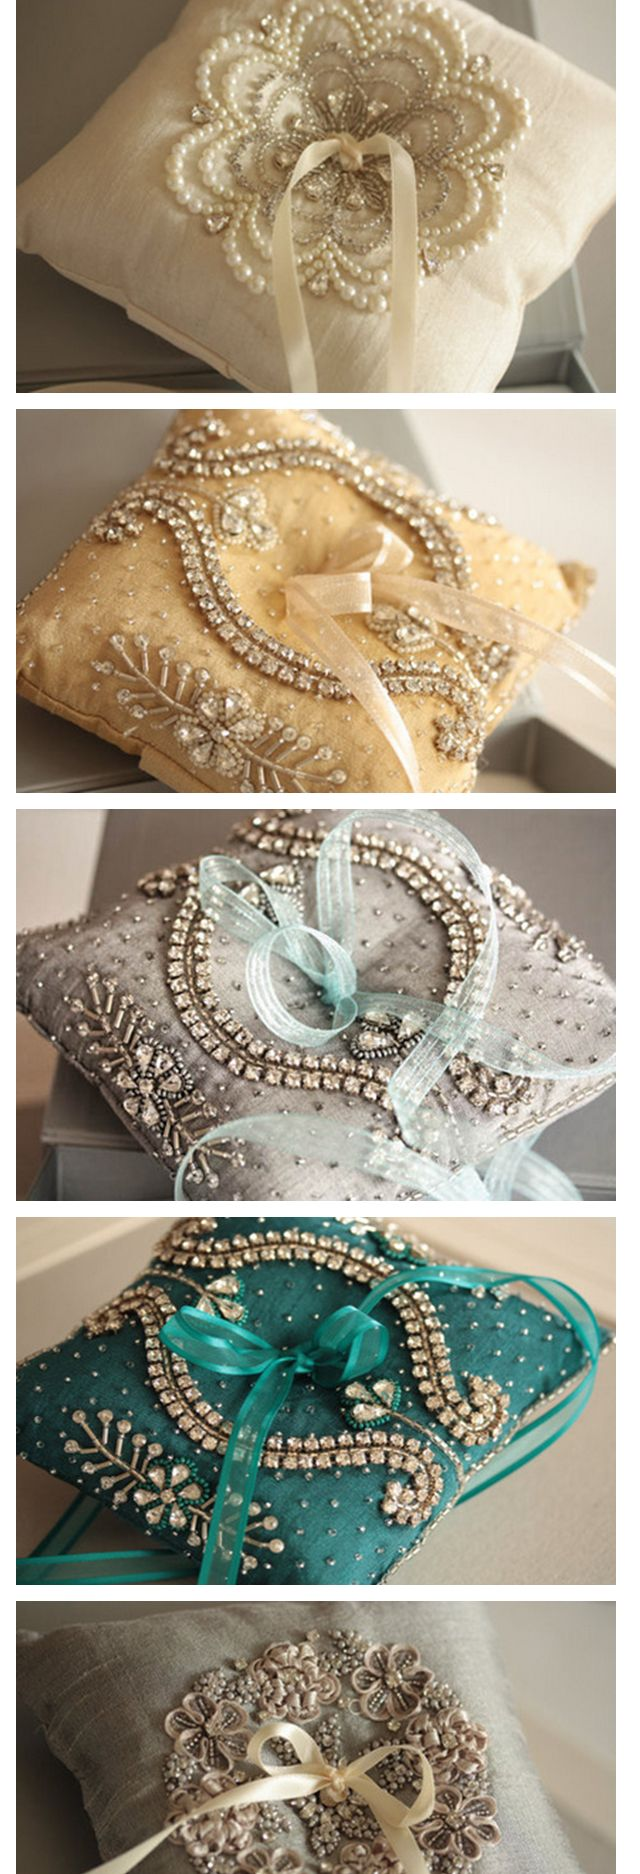 Ring bearer pillows - beautifully embellished